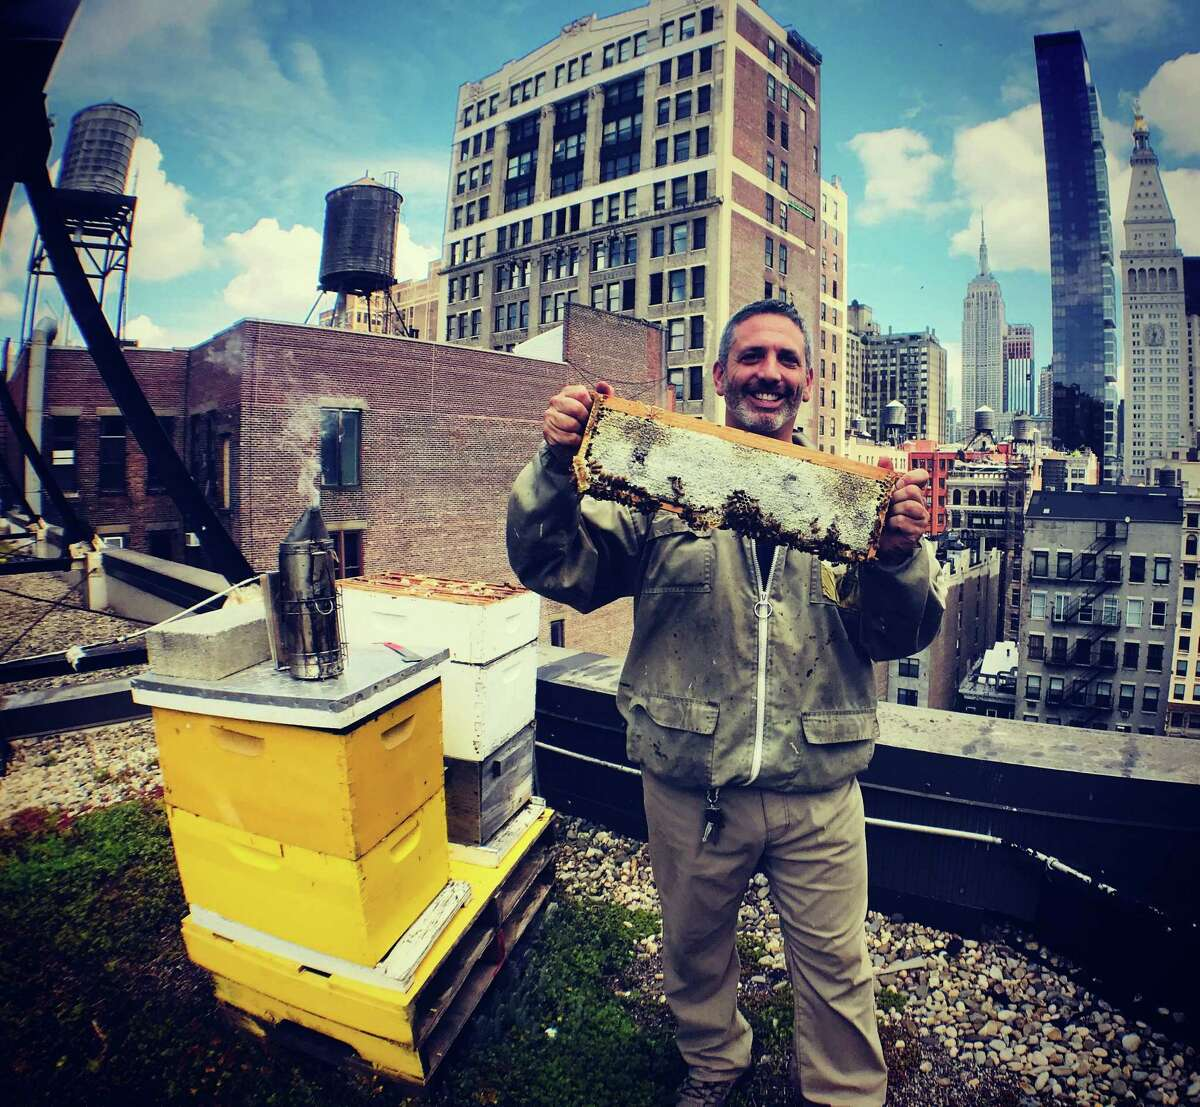 Norwalk's Andrew Coté is a fourth generation beekeeper and author who recently published his memoir